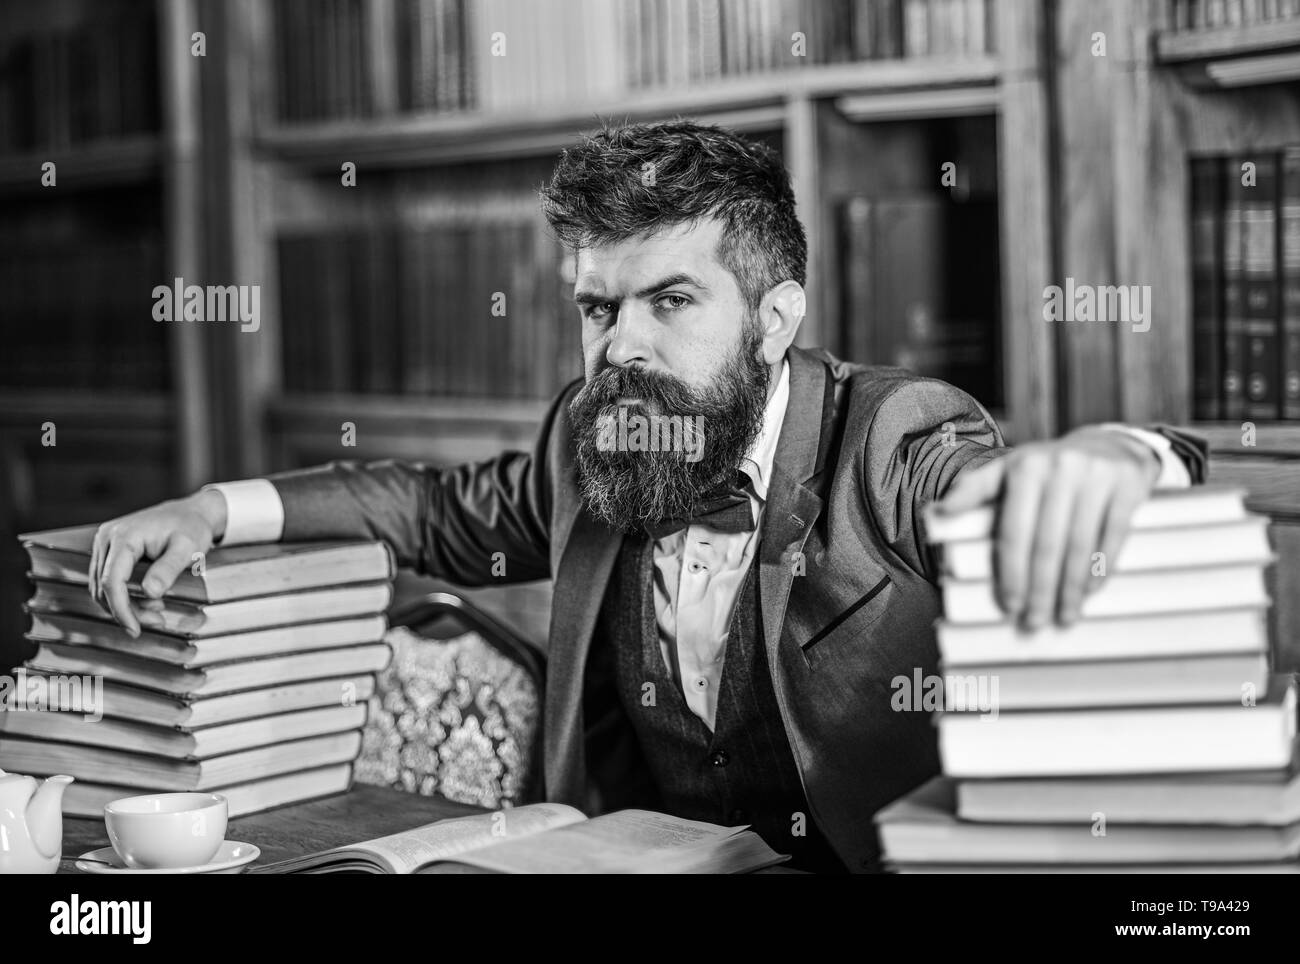 Man sits at table with many books. Mature man has serious face and looks confident. Successful study, education, hard work, intellectual work, confidence, research concept. Guy reads in old library. - Stock Image